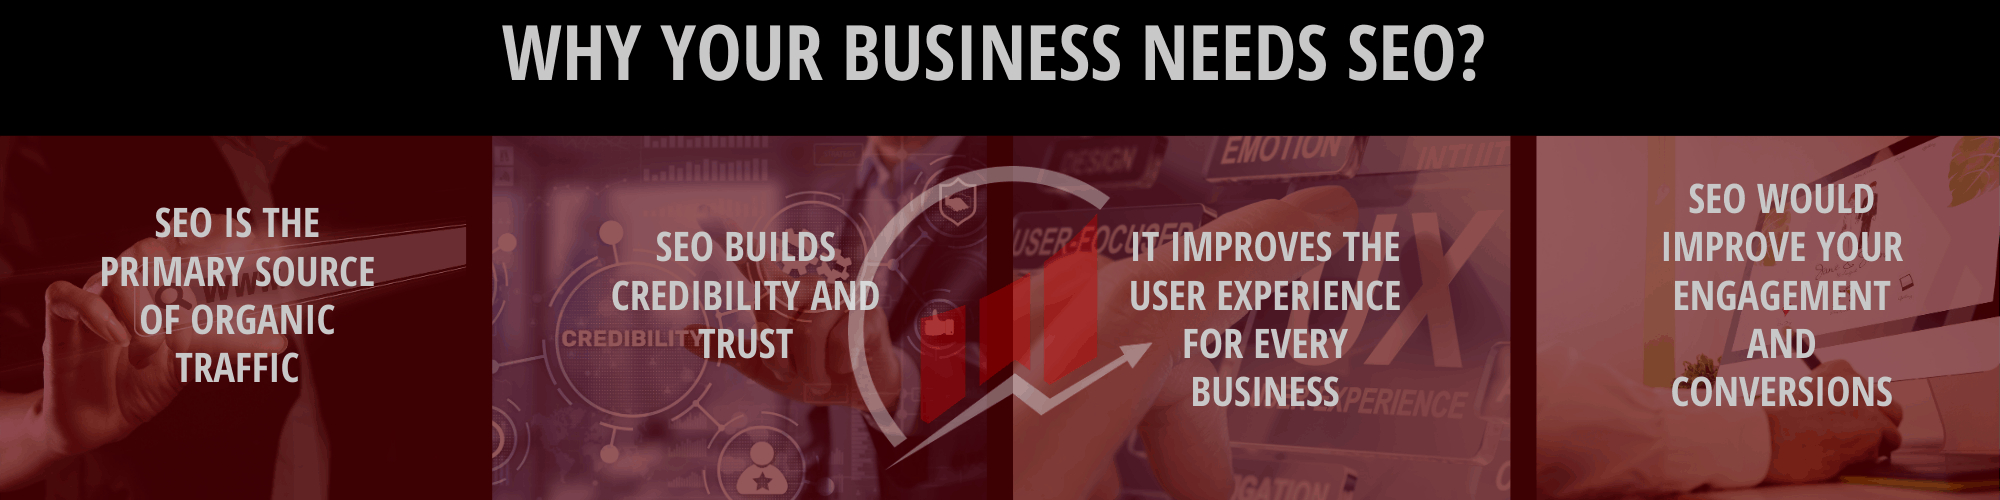 SEO in Business